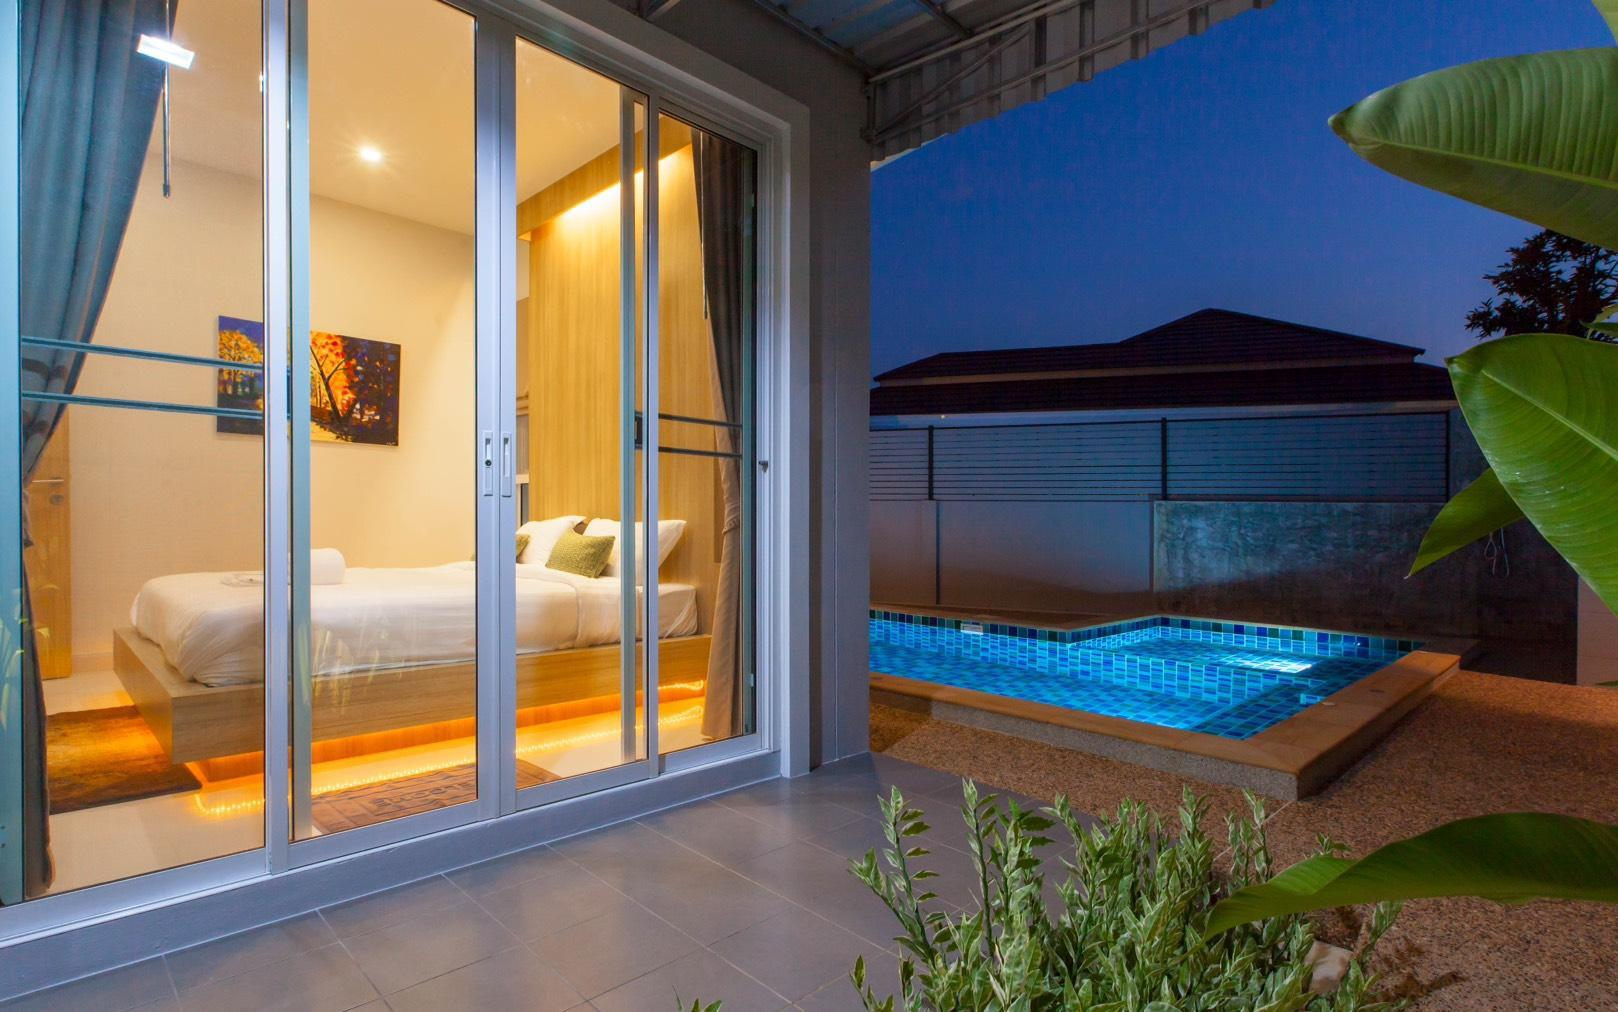 Breath-Taking 5 Star Pool Villa Ao Nang Krabi. Breath-Taking 5 Star Pool Villa Ao Nang Krabi.